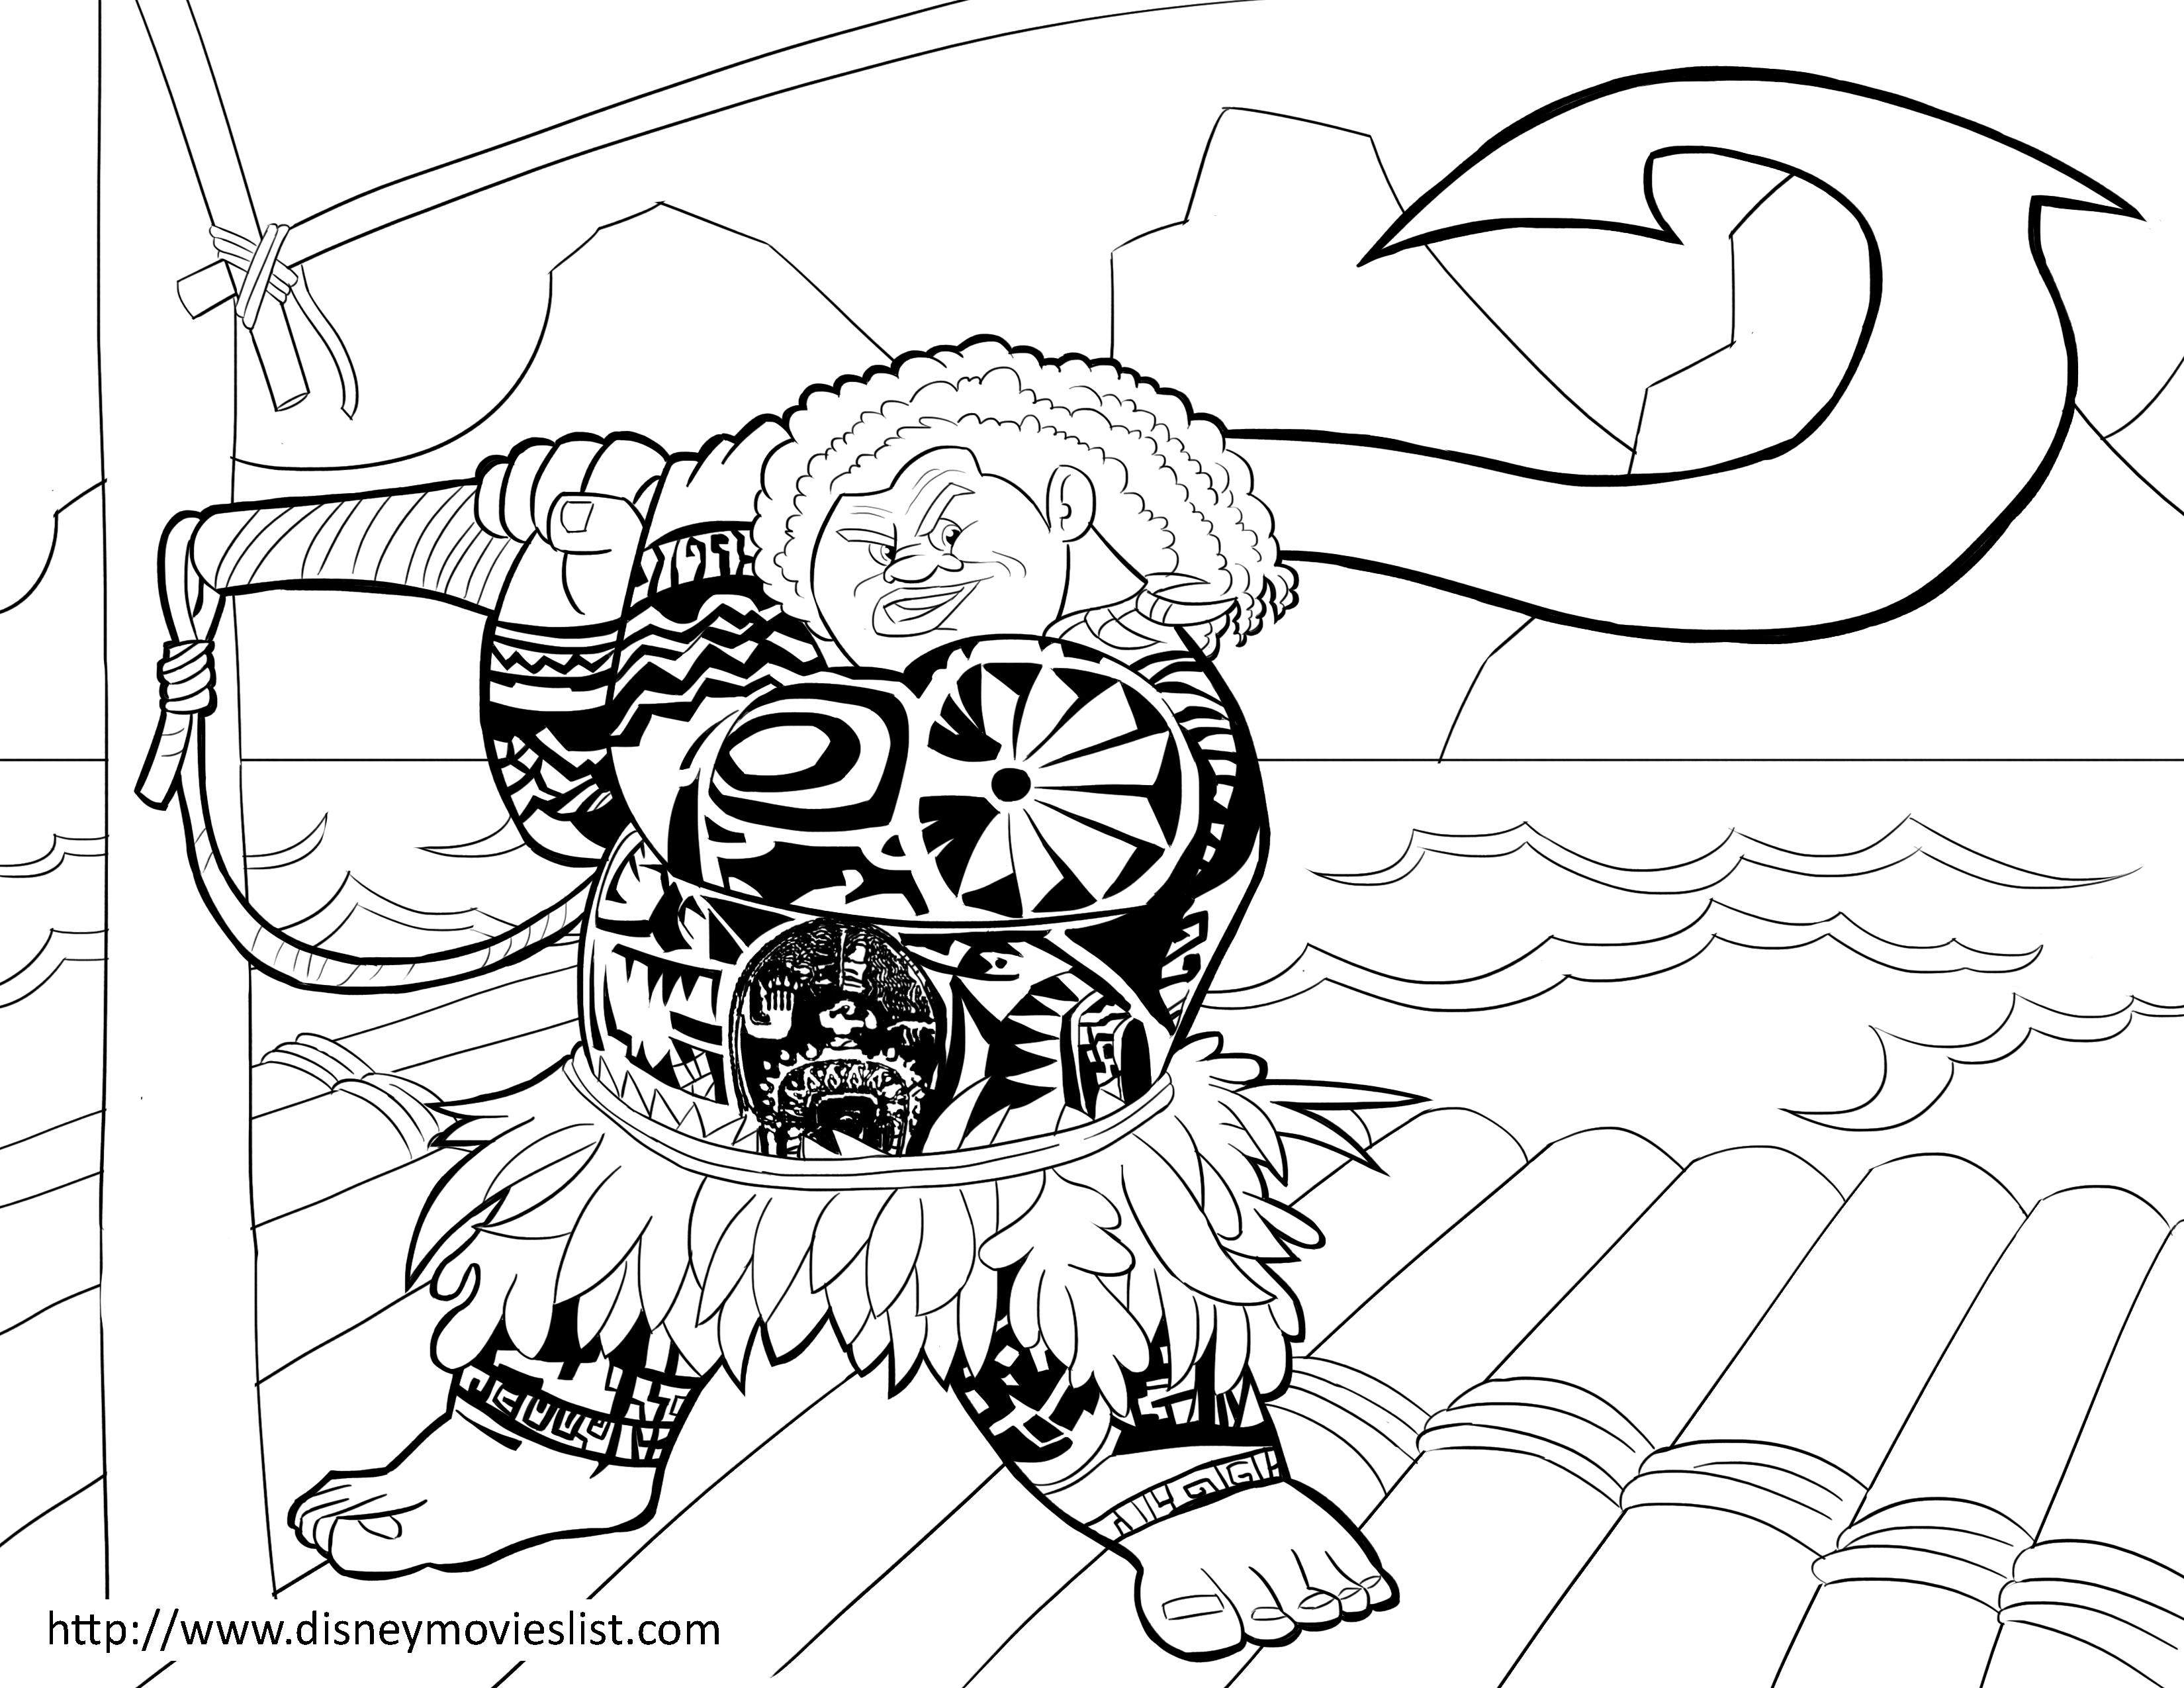 Moana Coloring Pages Printable At Getdrawings Com Free For